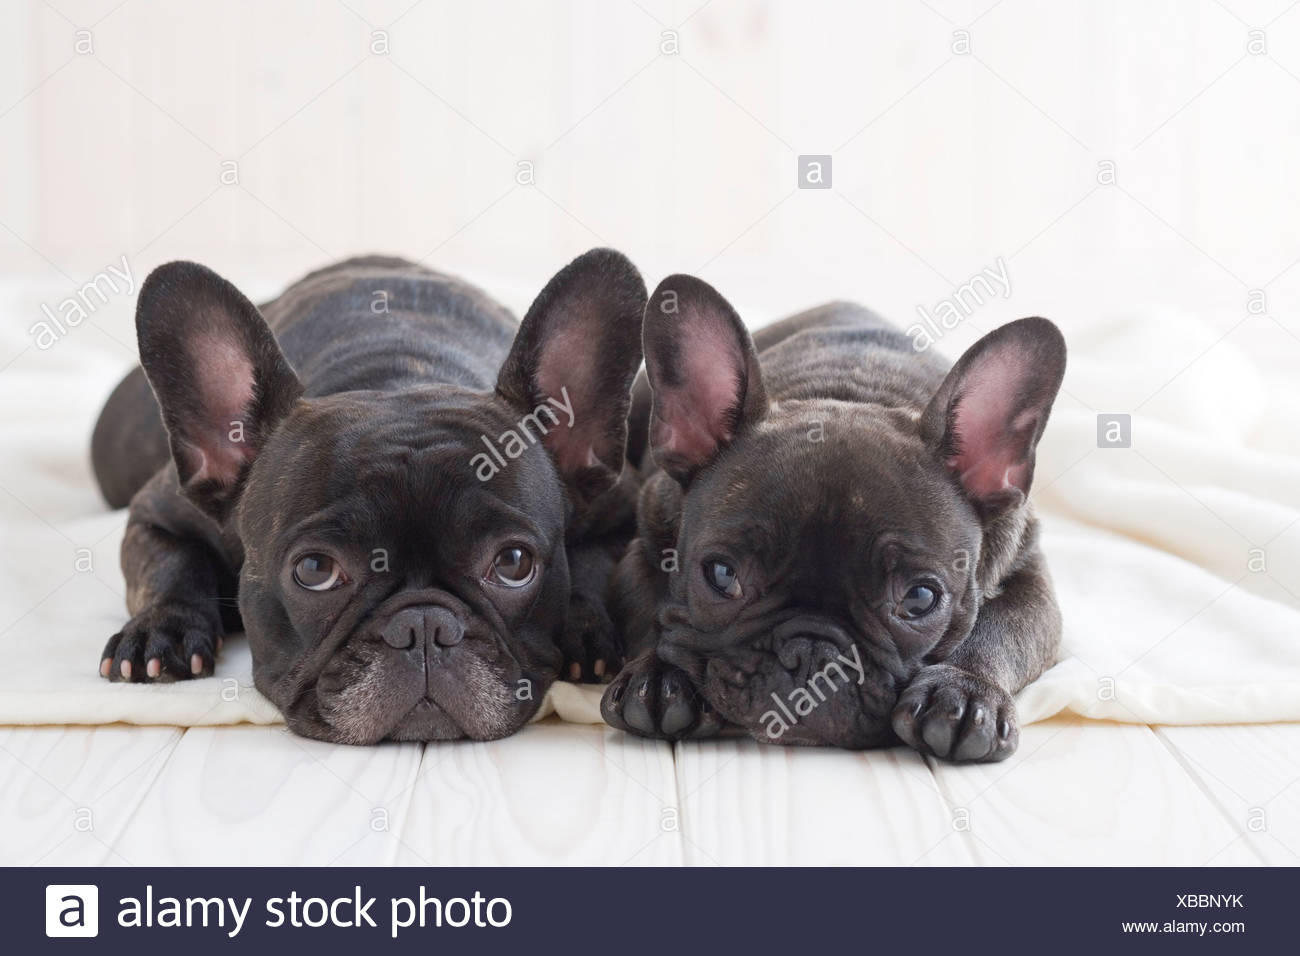 Two french bulldog snuggling on a blanket - Stock Image